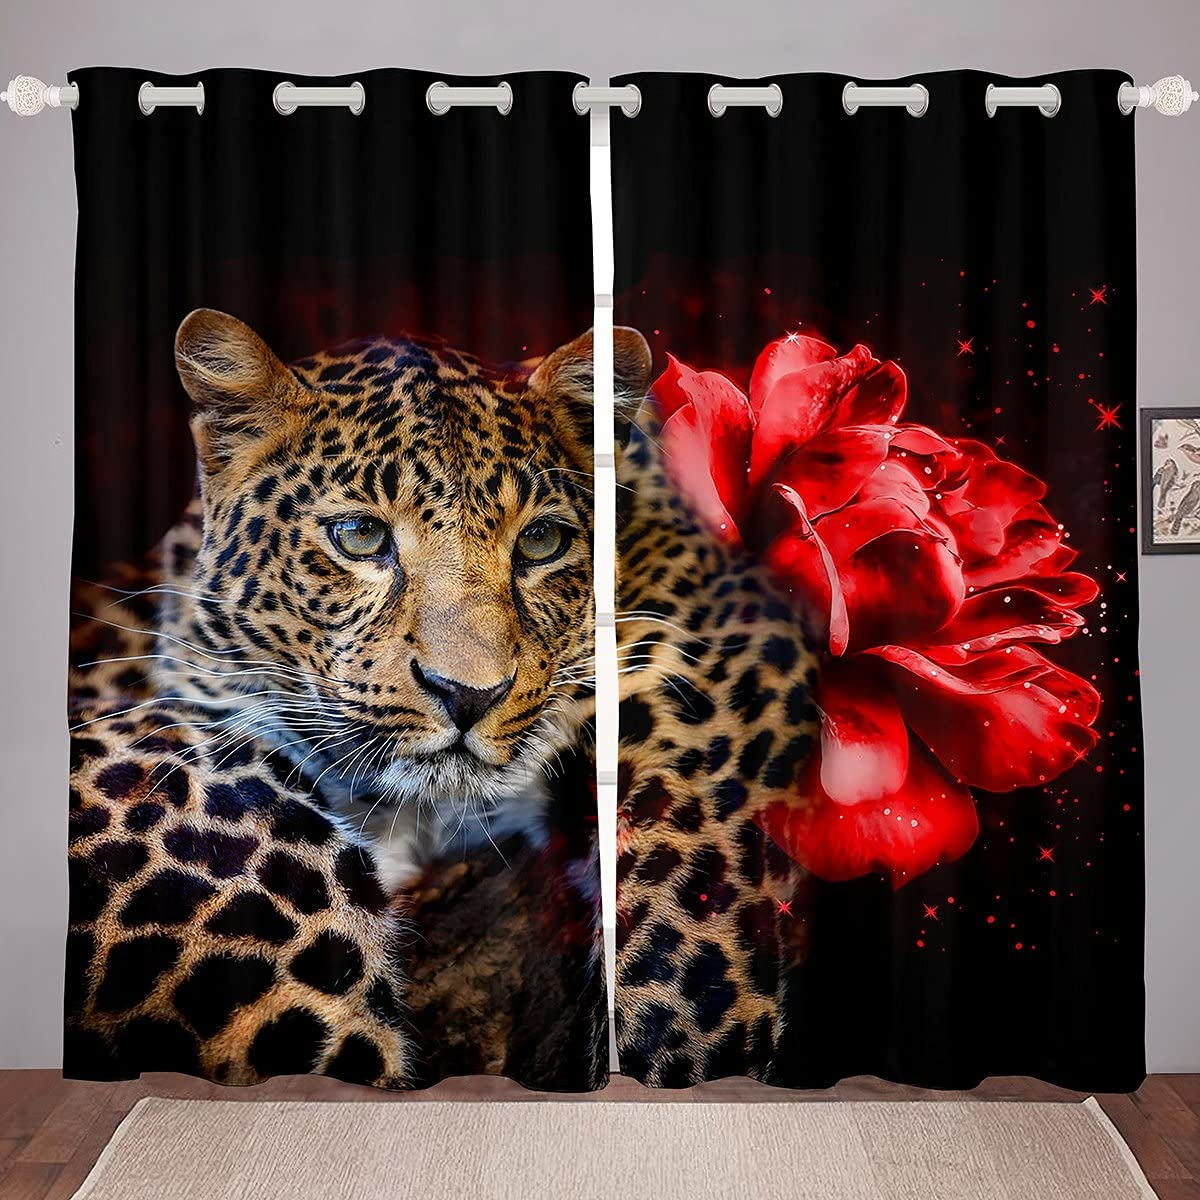 Leopard Window Curtains 日本正規代理店品 for Bedroom Room Rose Red 公式通販 Curtain Living